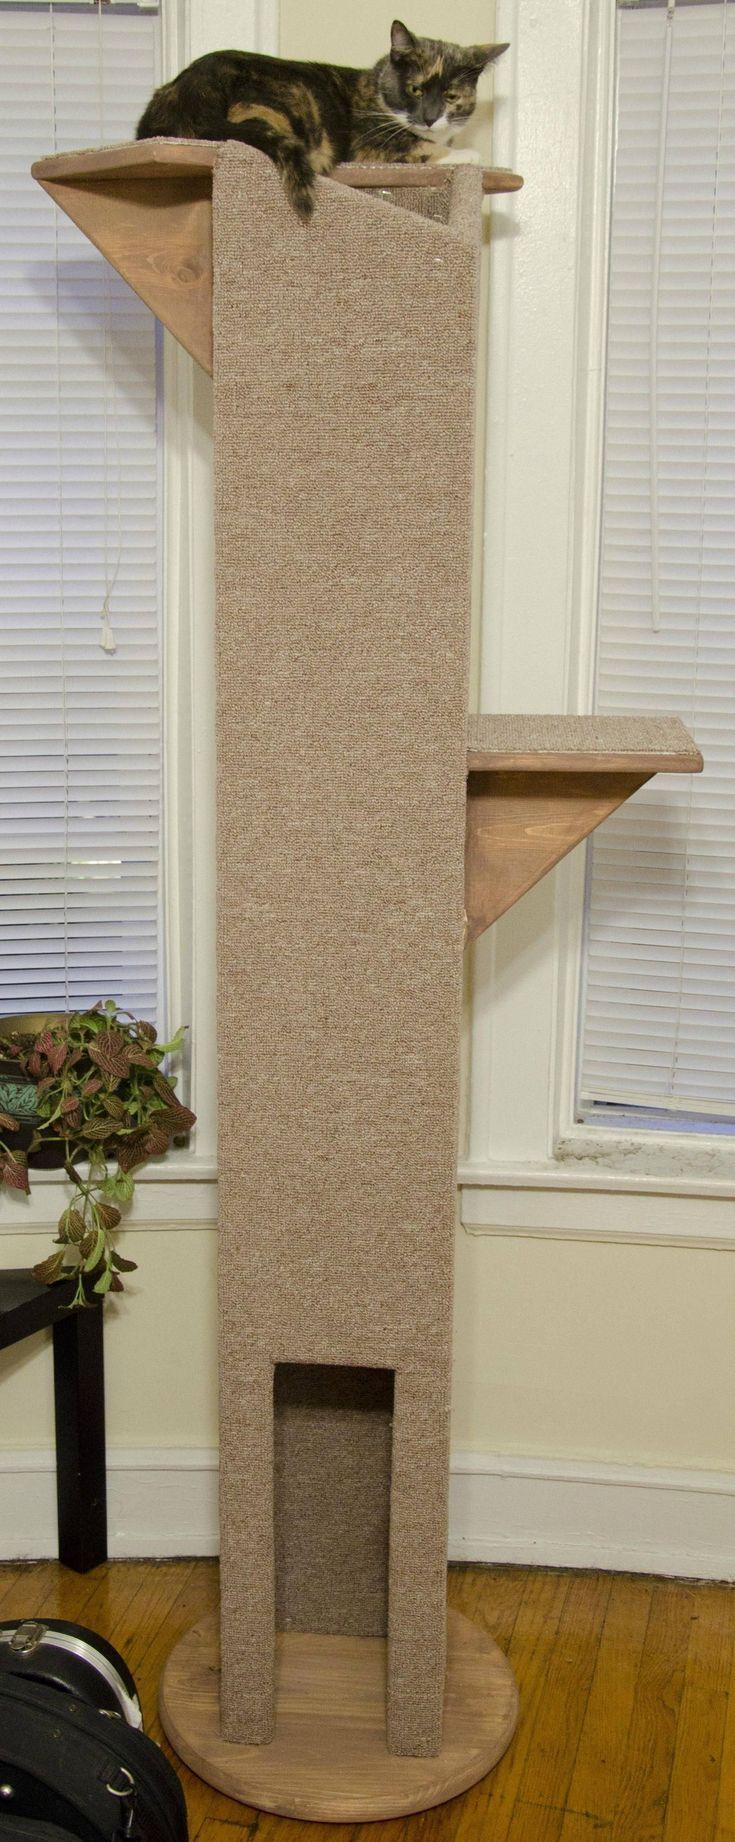 Build A Cat Tree With These Free Plans